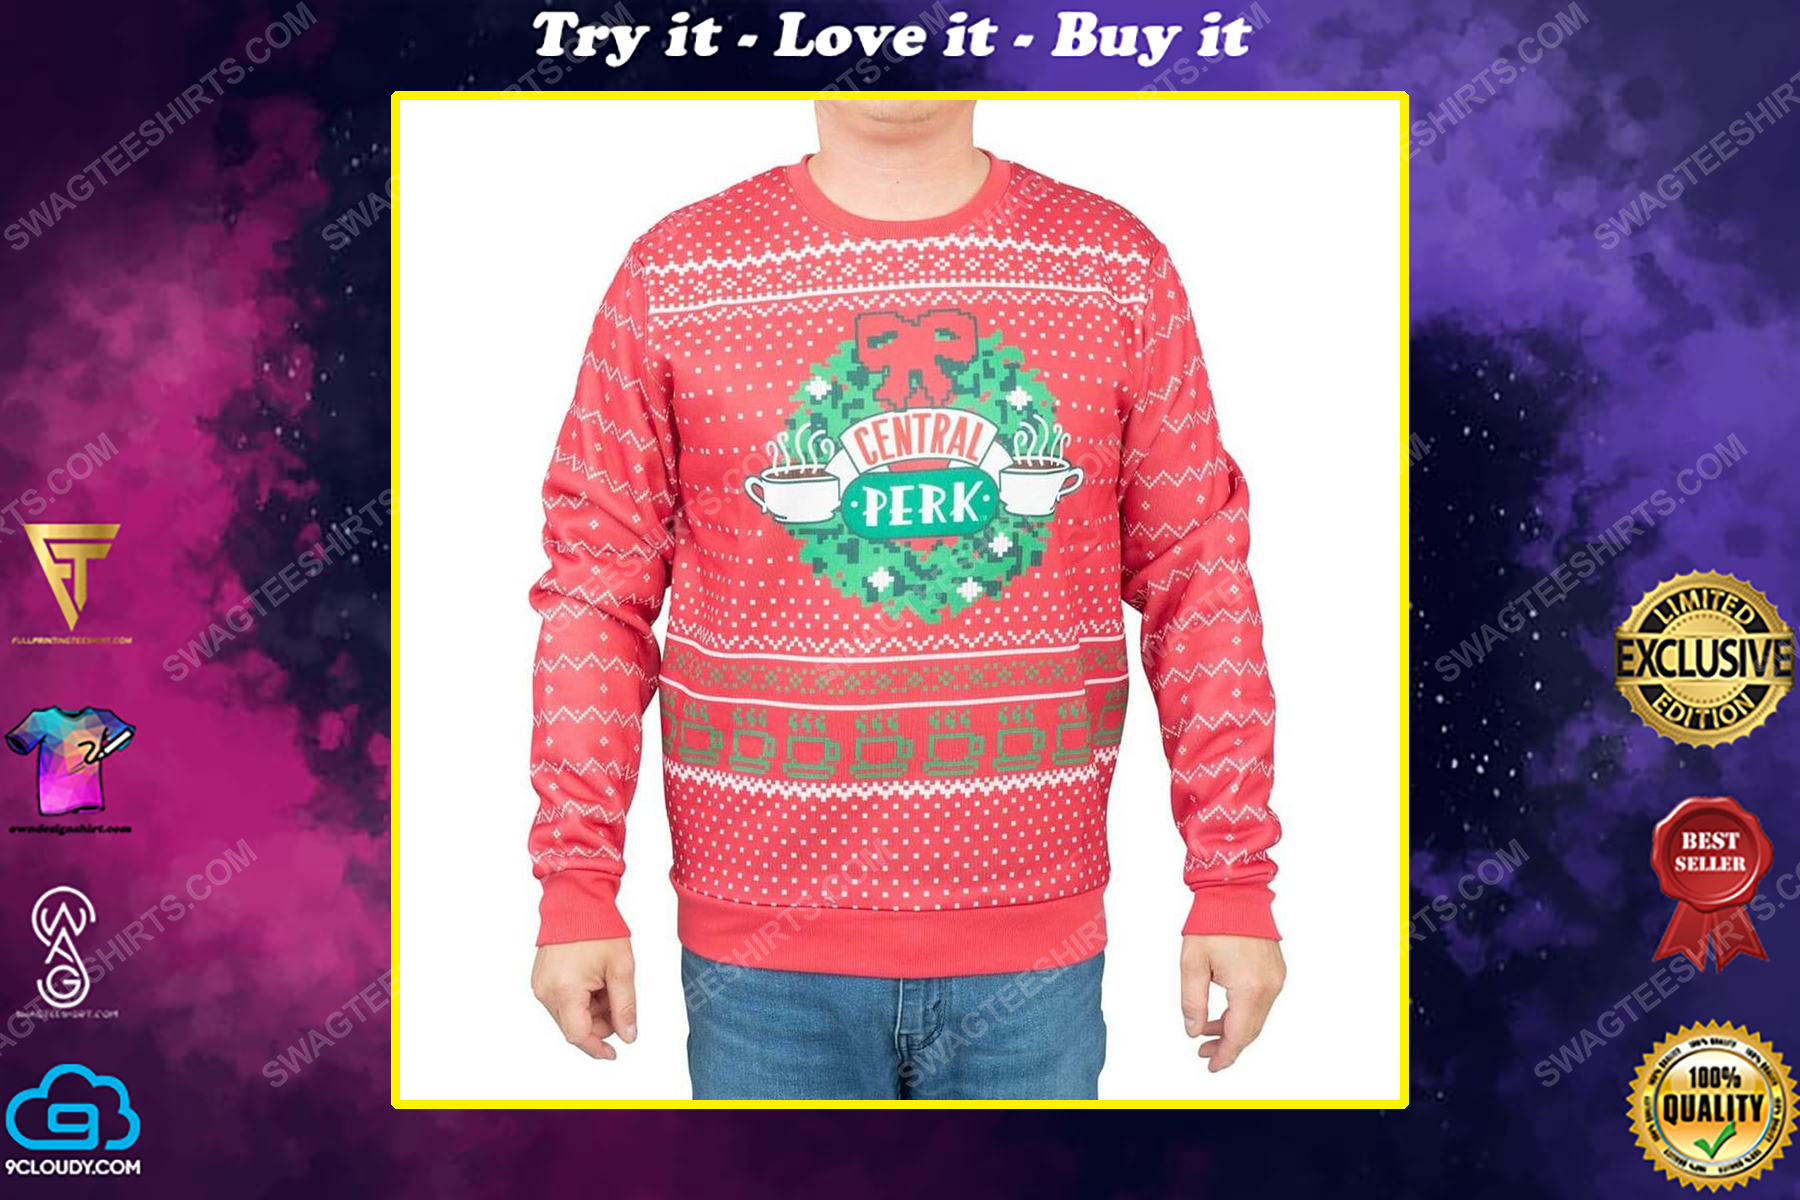 TV show friends central perk full print ugly christmas sweater